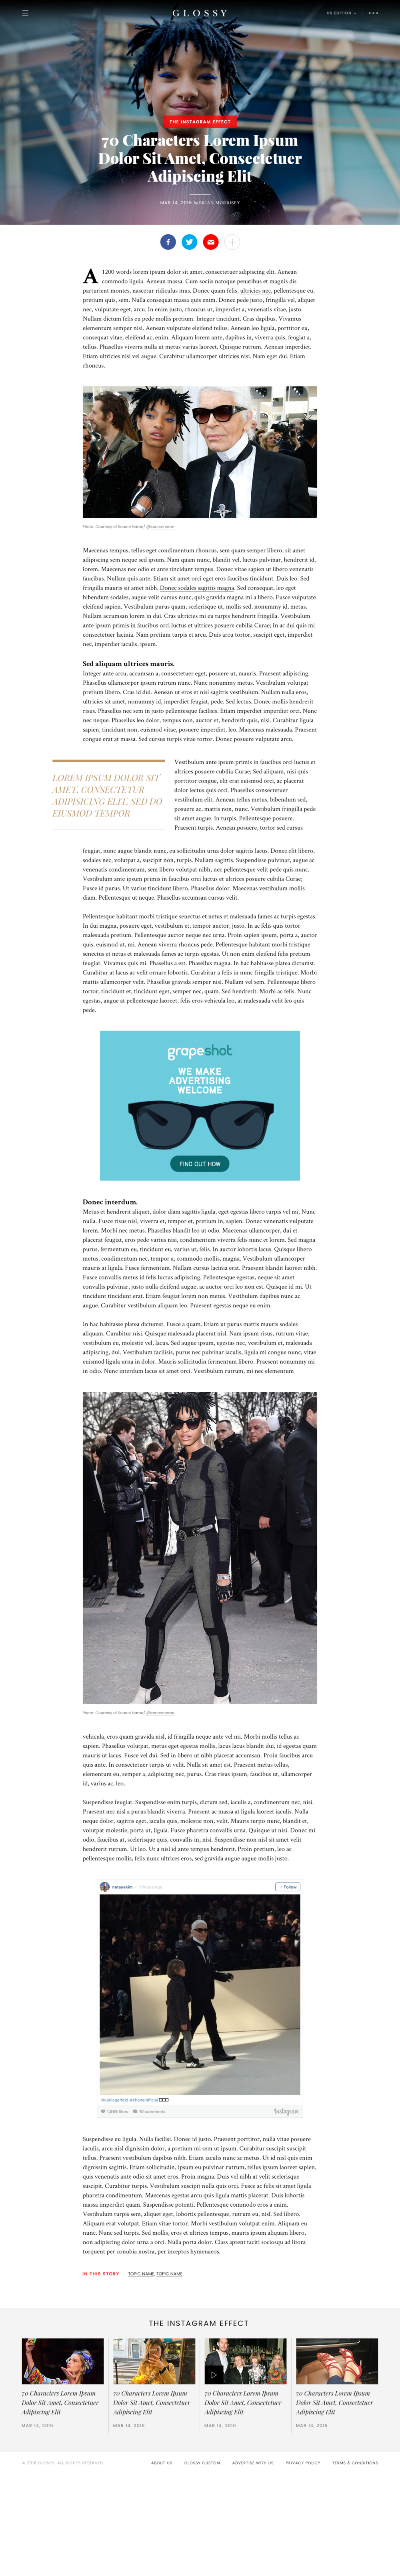 glossy_1280_article_lead.png